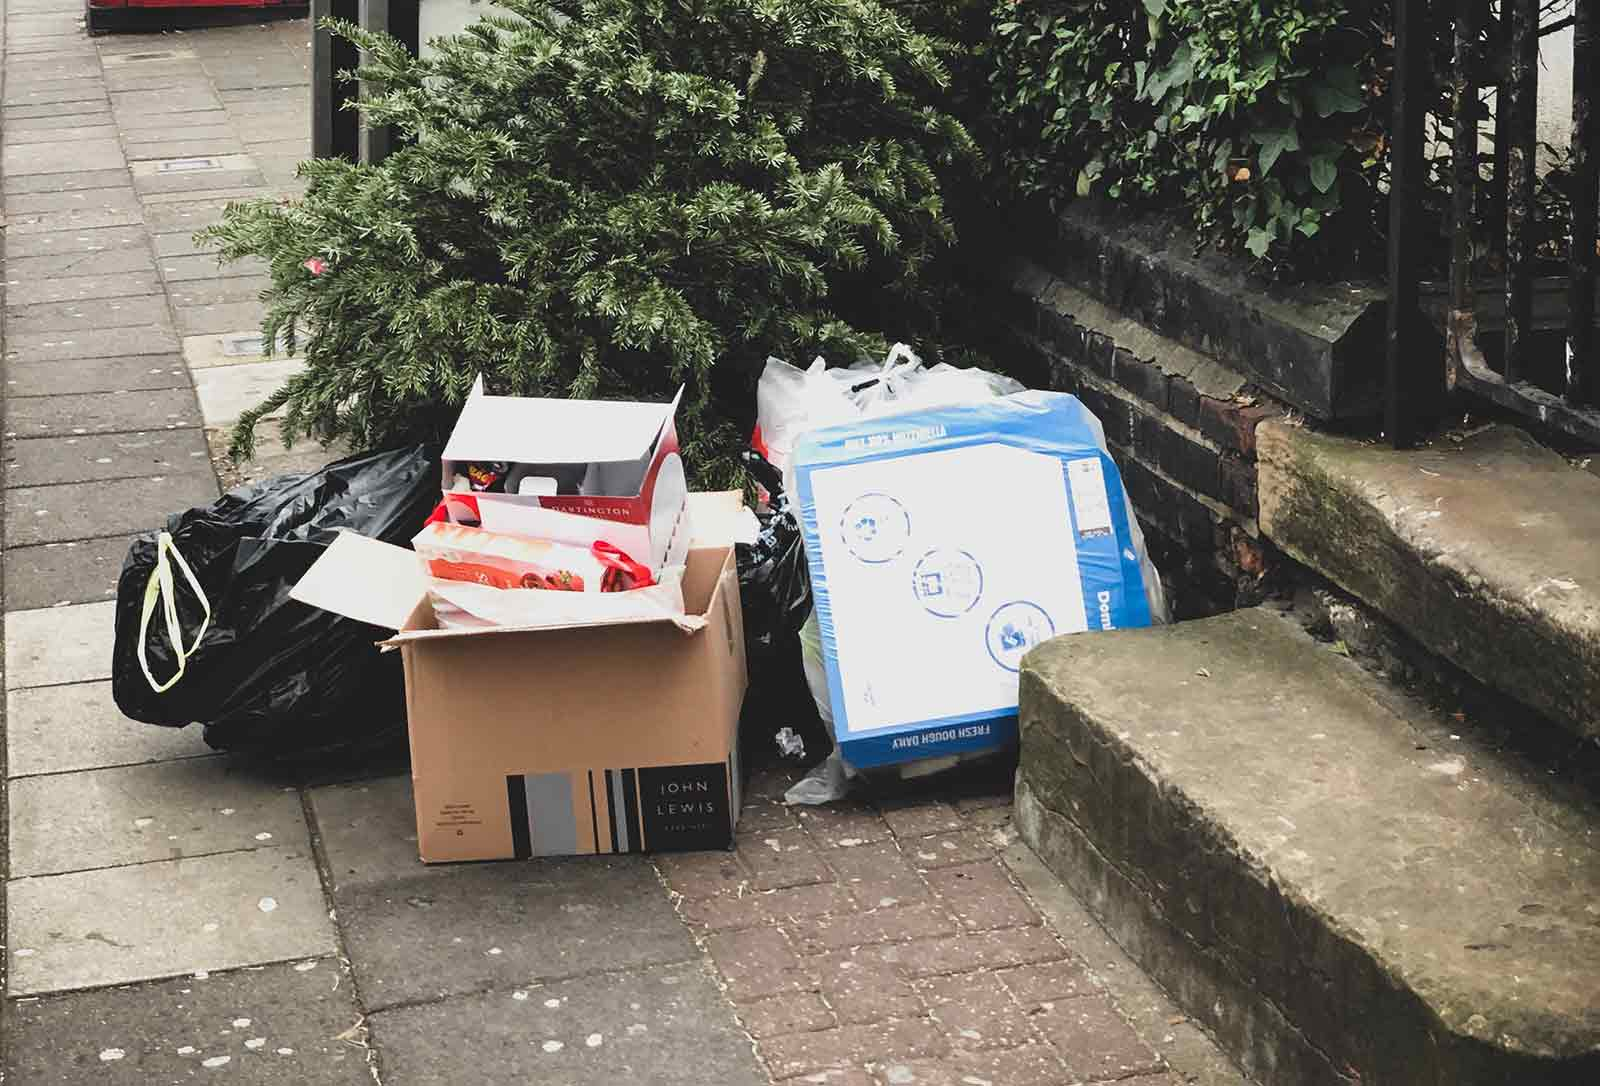 Rubbish removal services in London